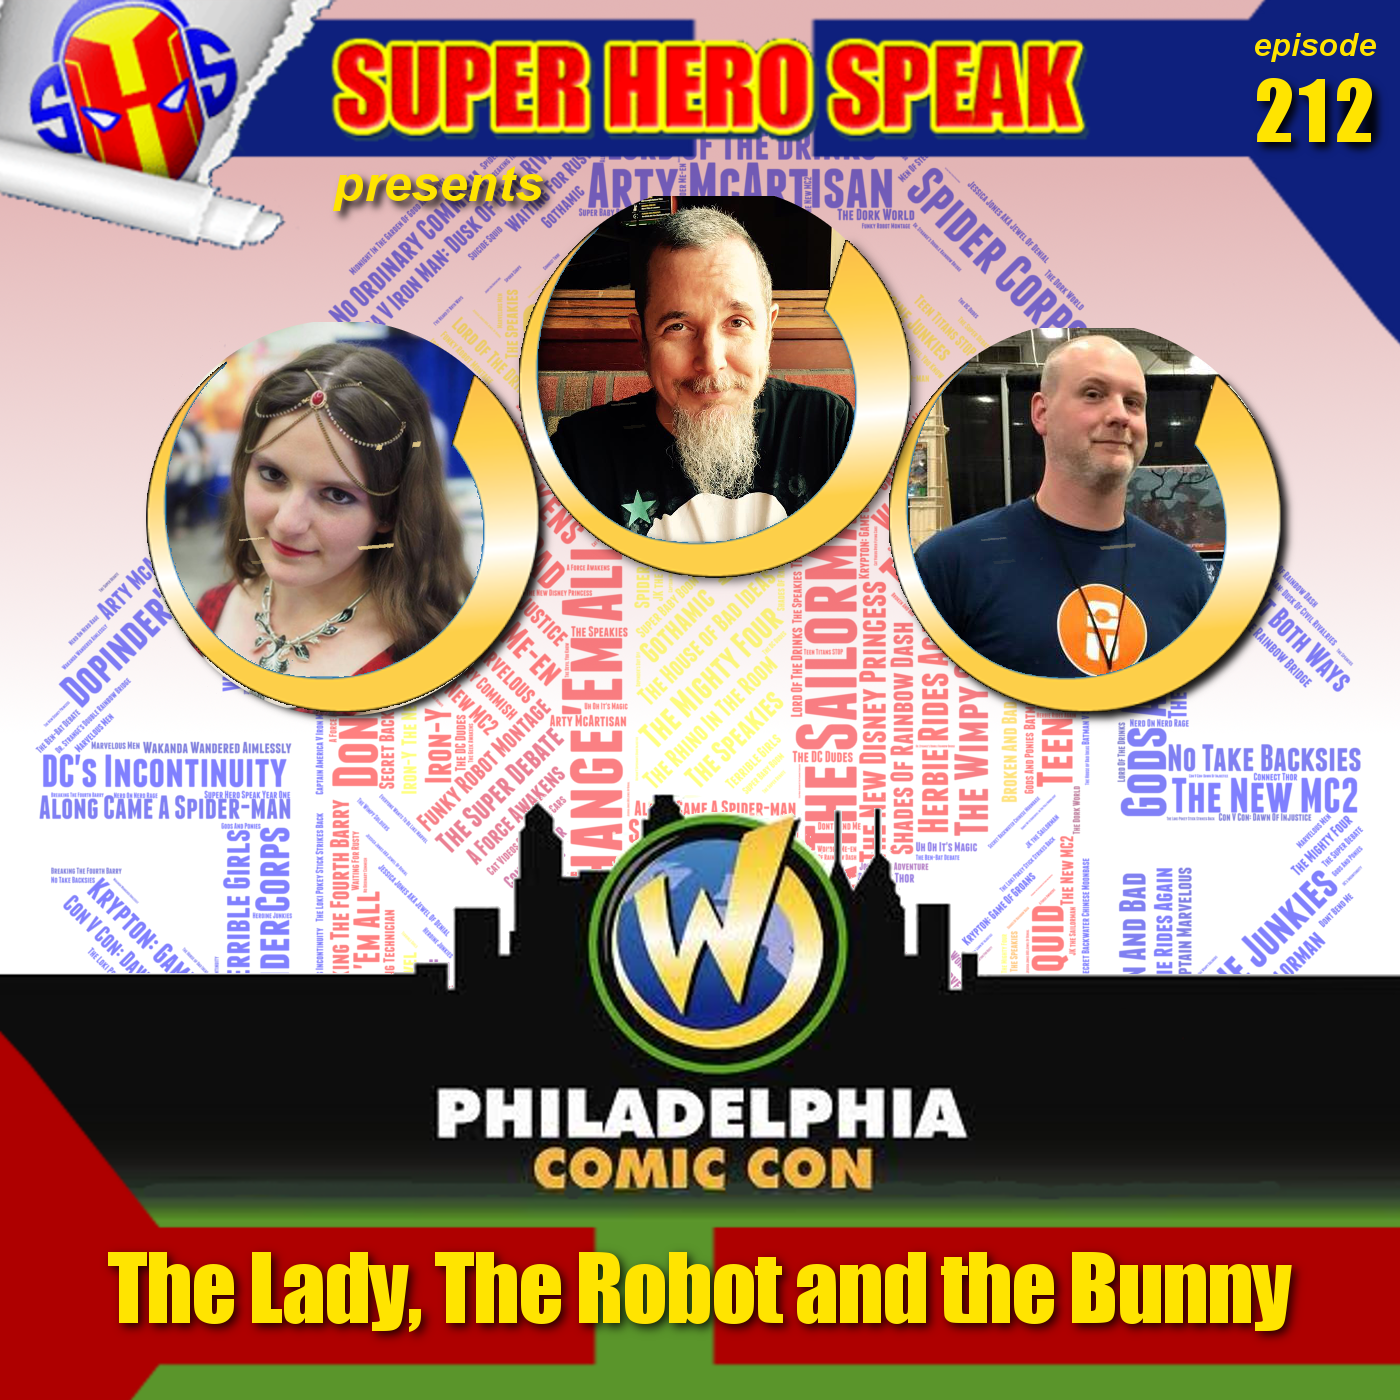 #212: The Lady, The Robot and the Bunny